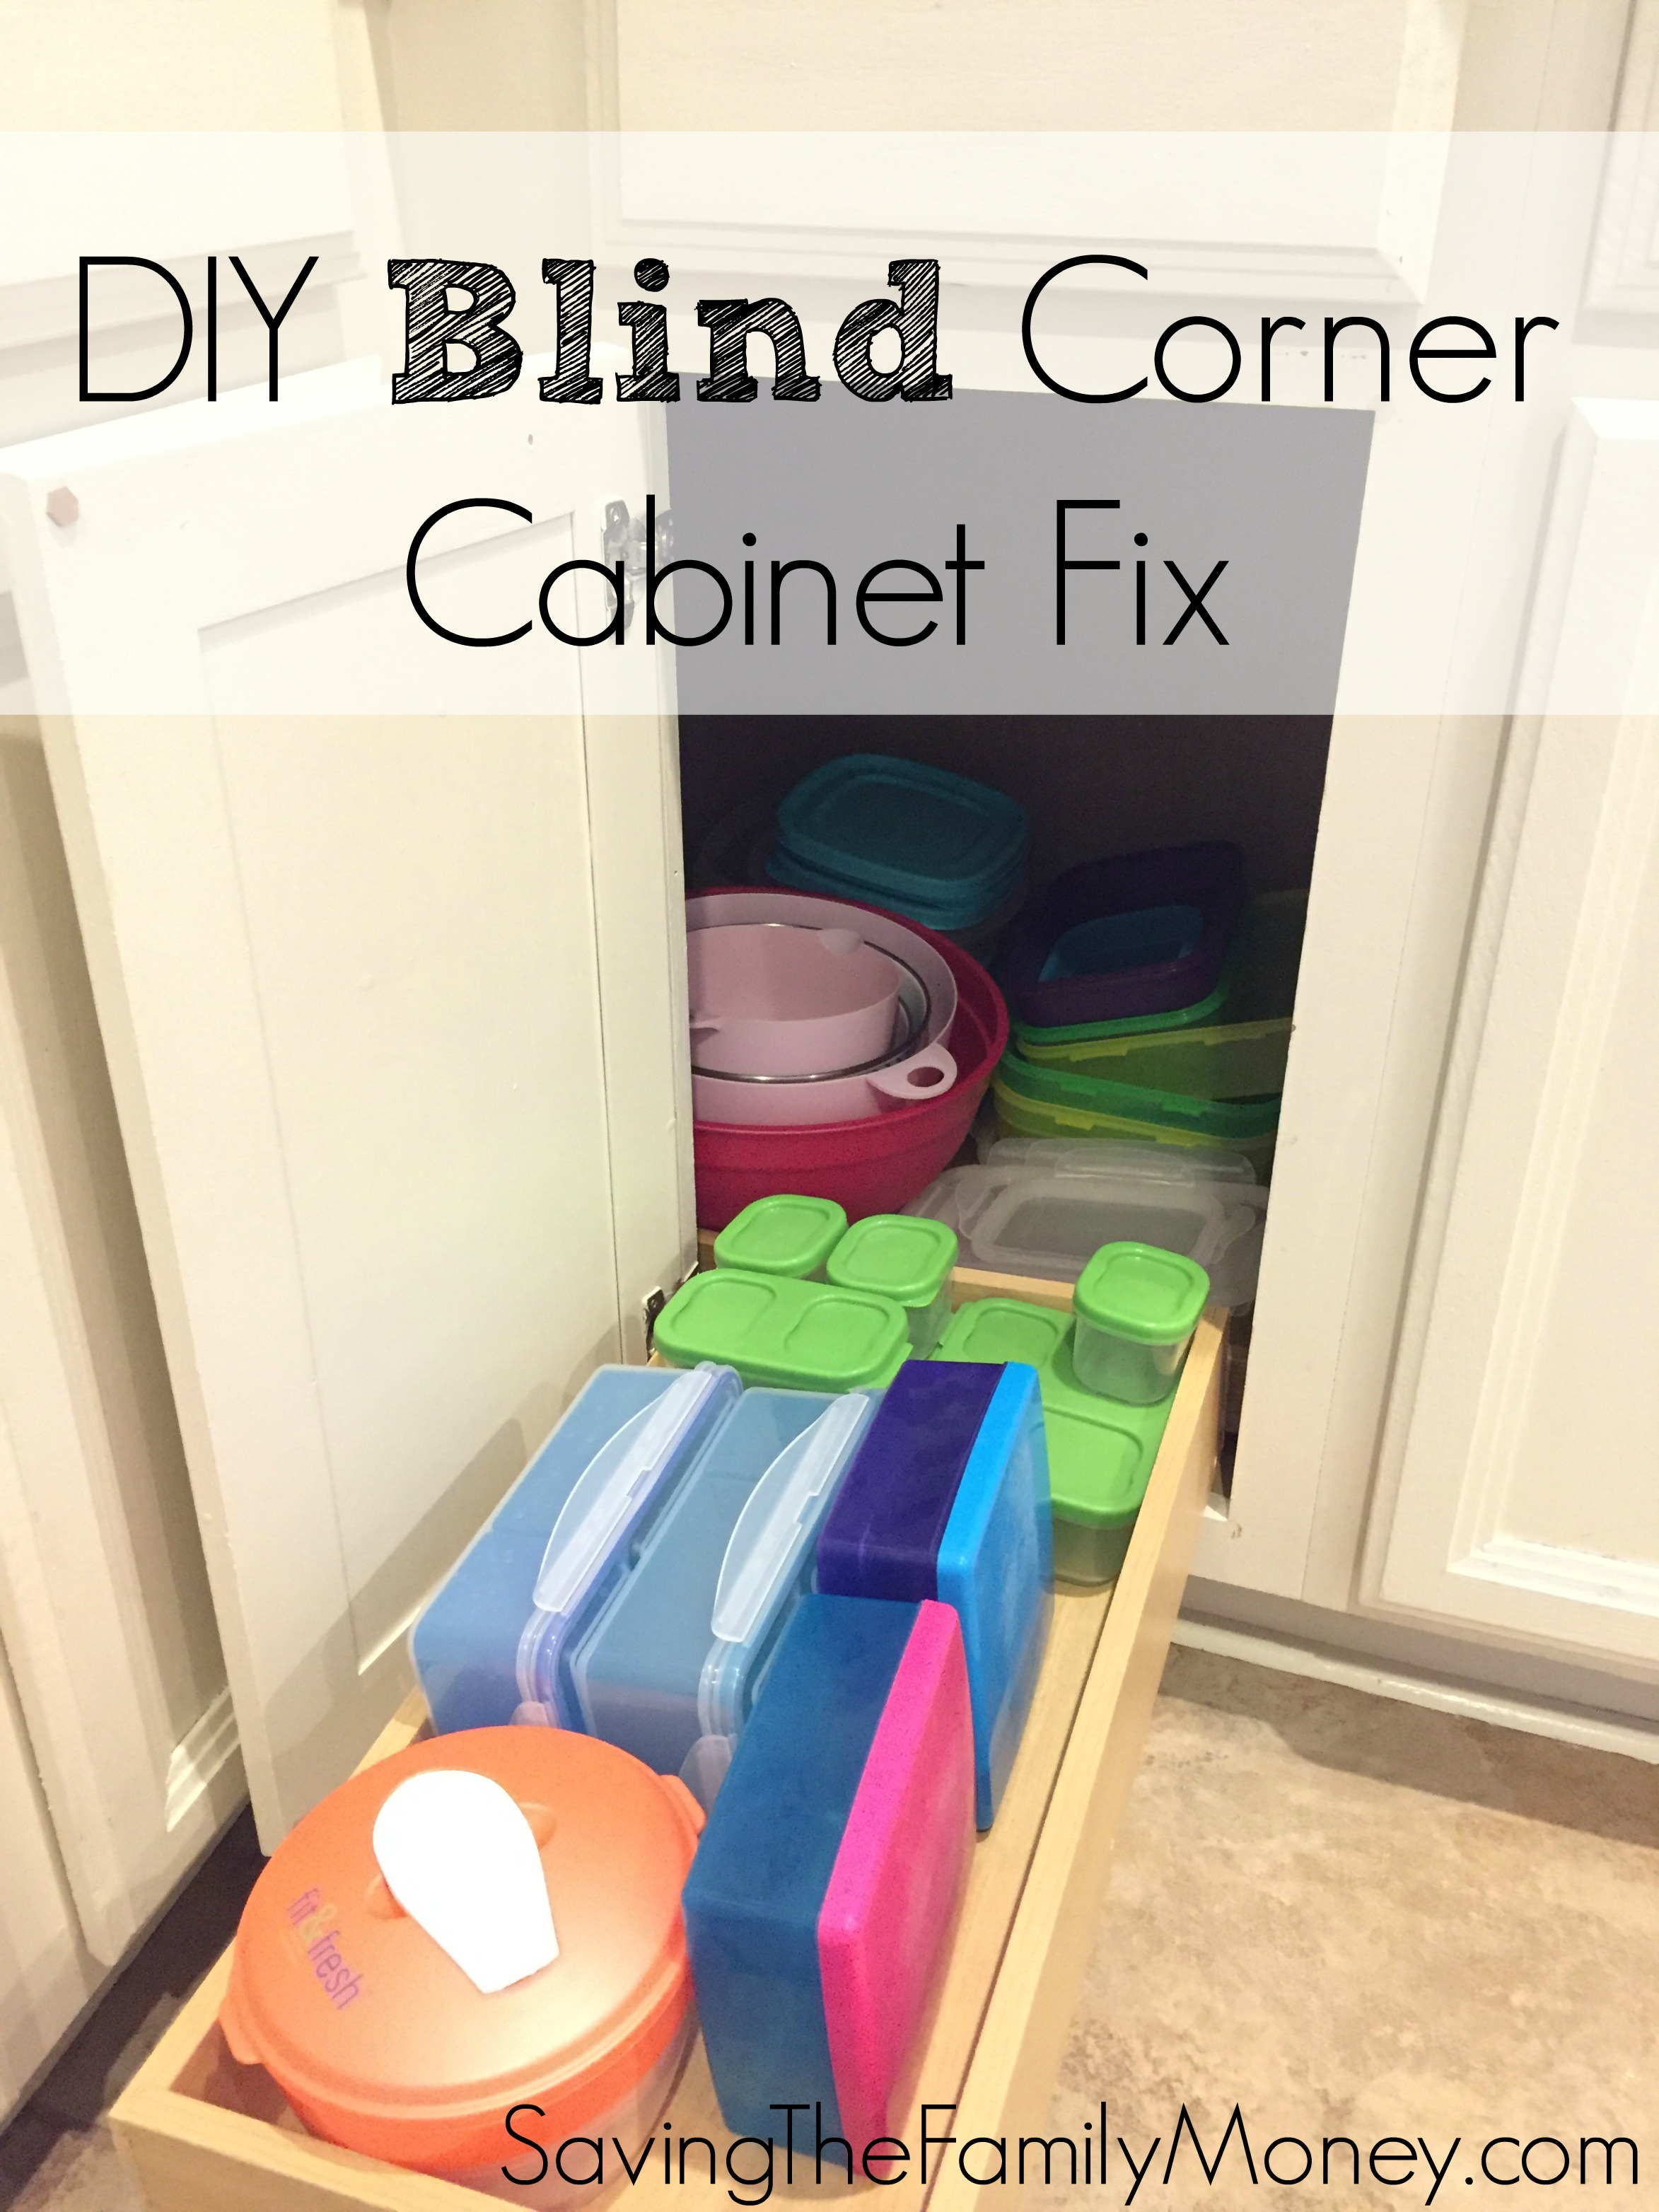 DIY Blind Corner Cabinet Fix